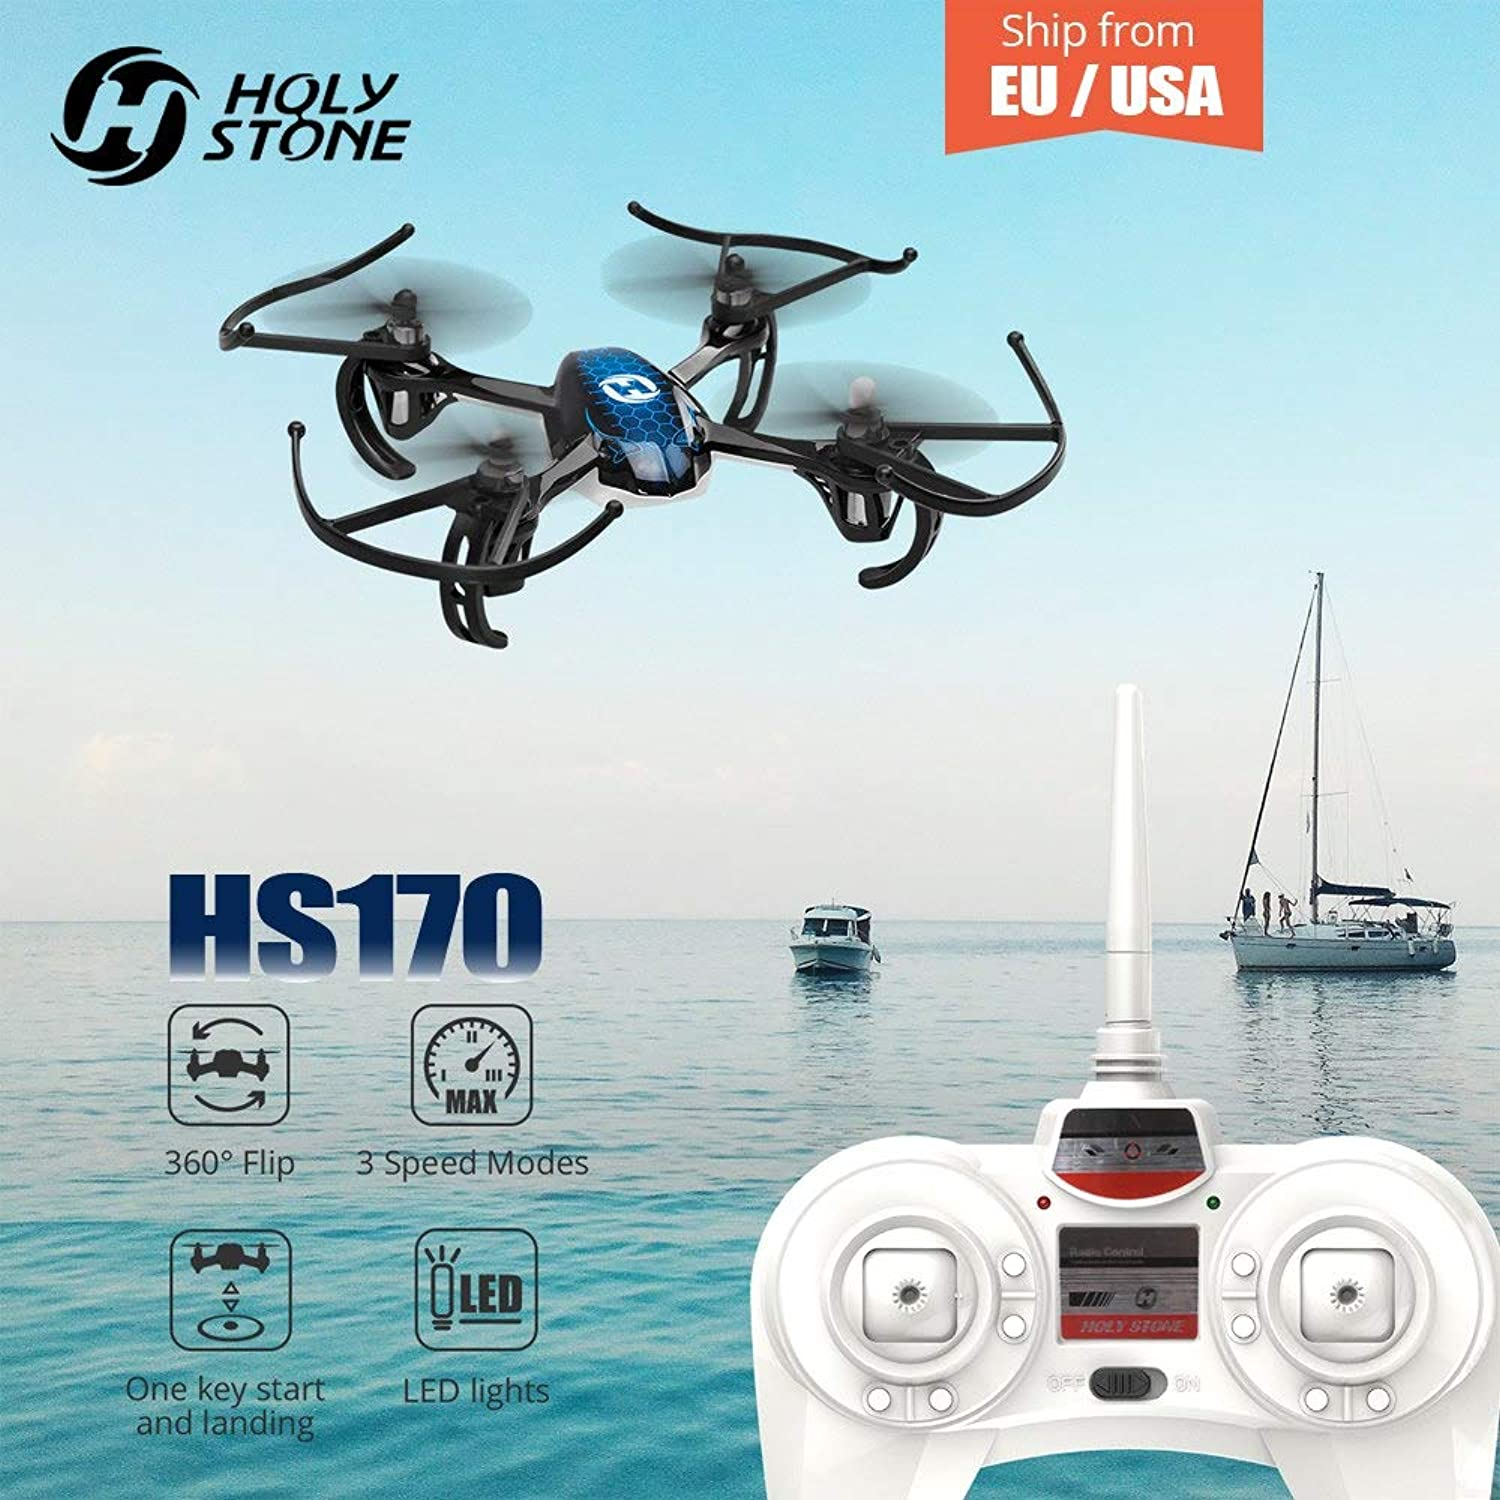 Generic Holy Stone HS170 Drone Predator Mini RC Helicopter 2.4Ghz 6Axis Gyro 4 Channels Quadcopter One Key Return Headless Toy RC Plane